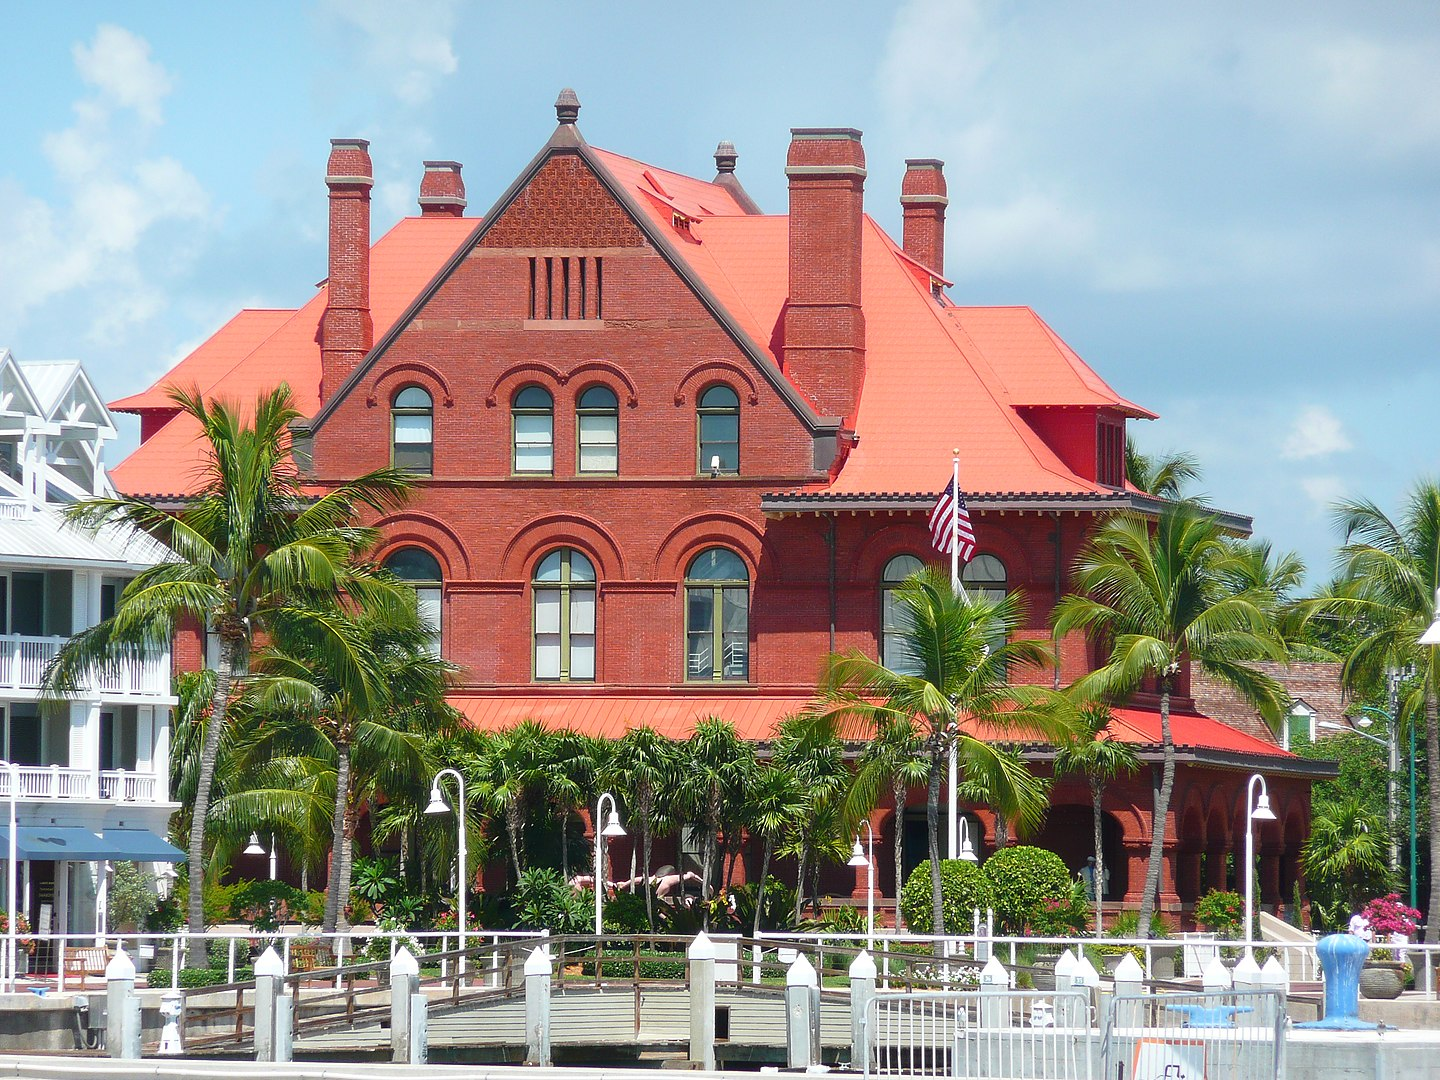 Back view of the Old Post Office and Customshouse (Key West Museum of Art & History)